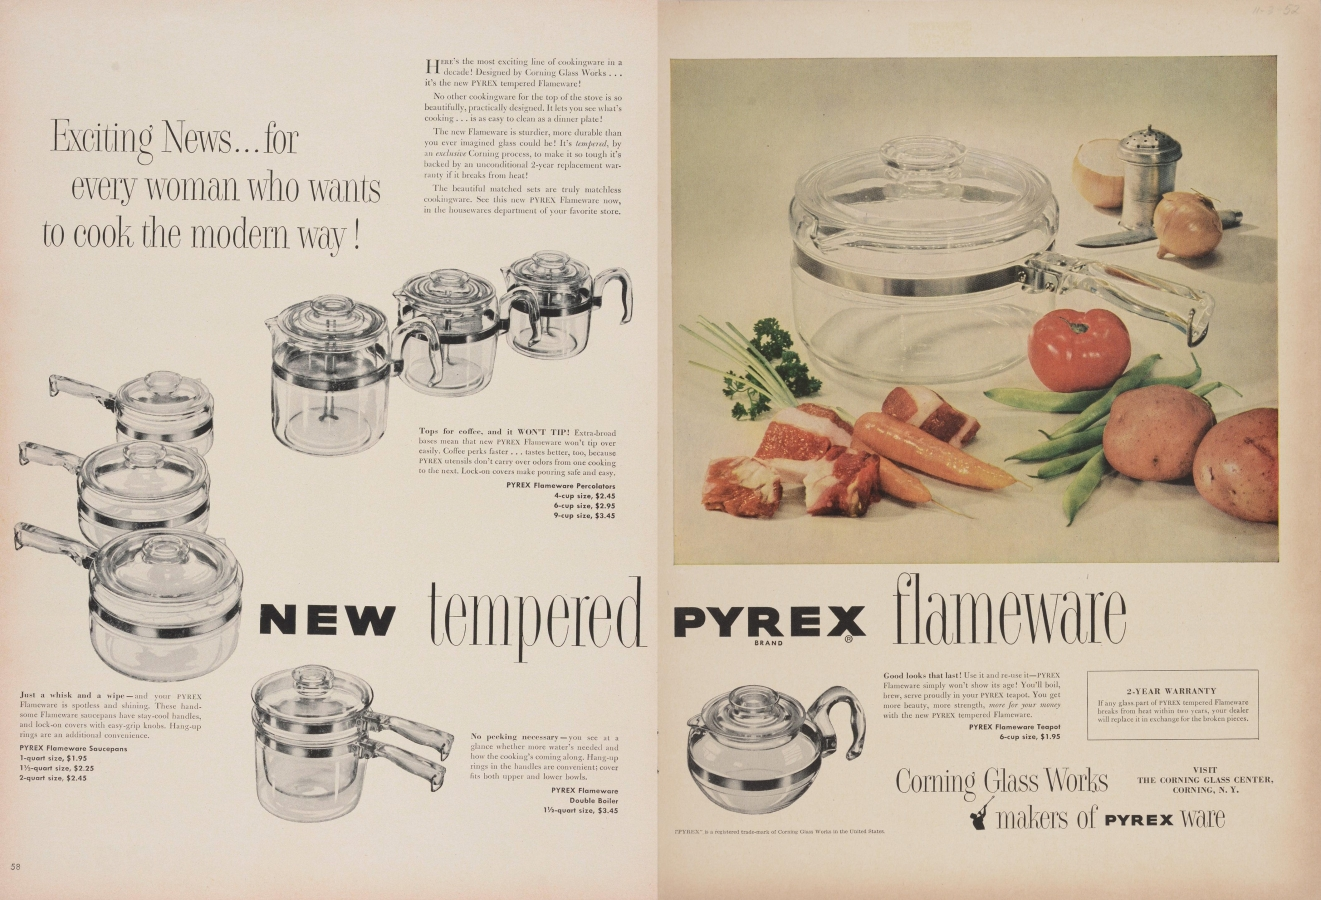 """Exciting news... for every woman who wants to cook the modern way! New tempered Pyrex flameware"""